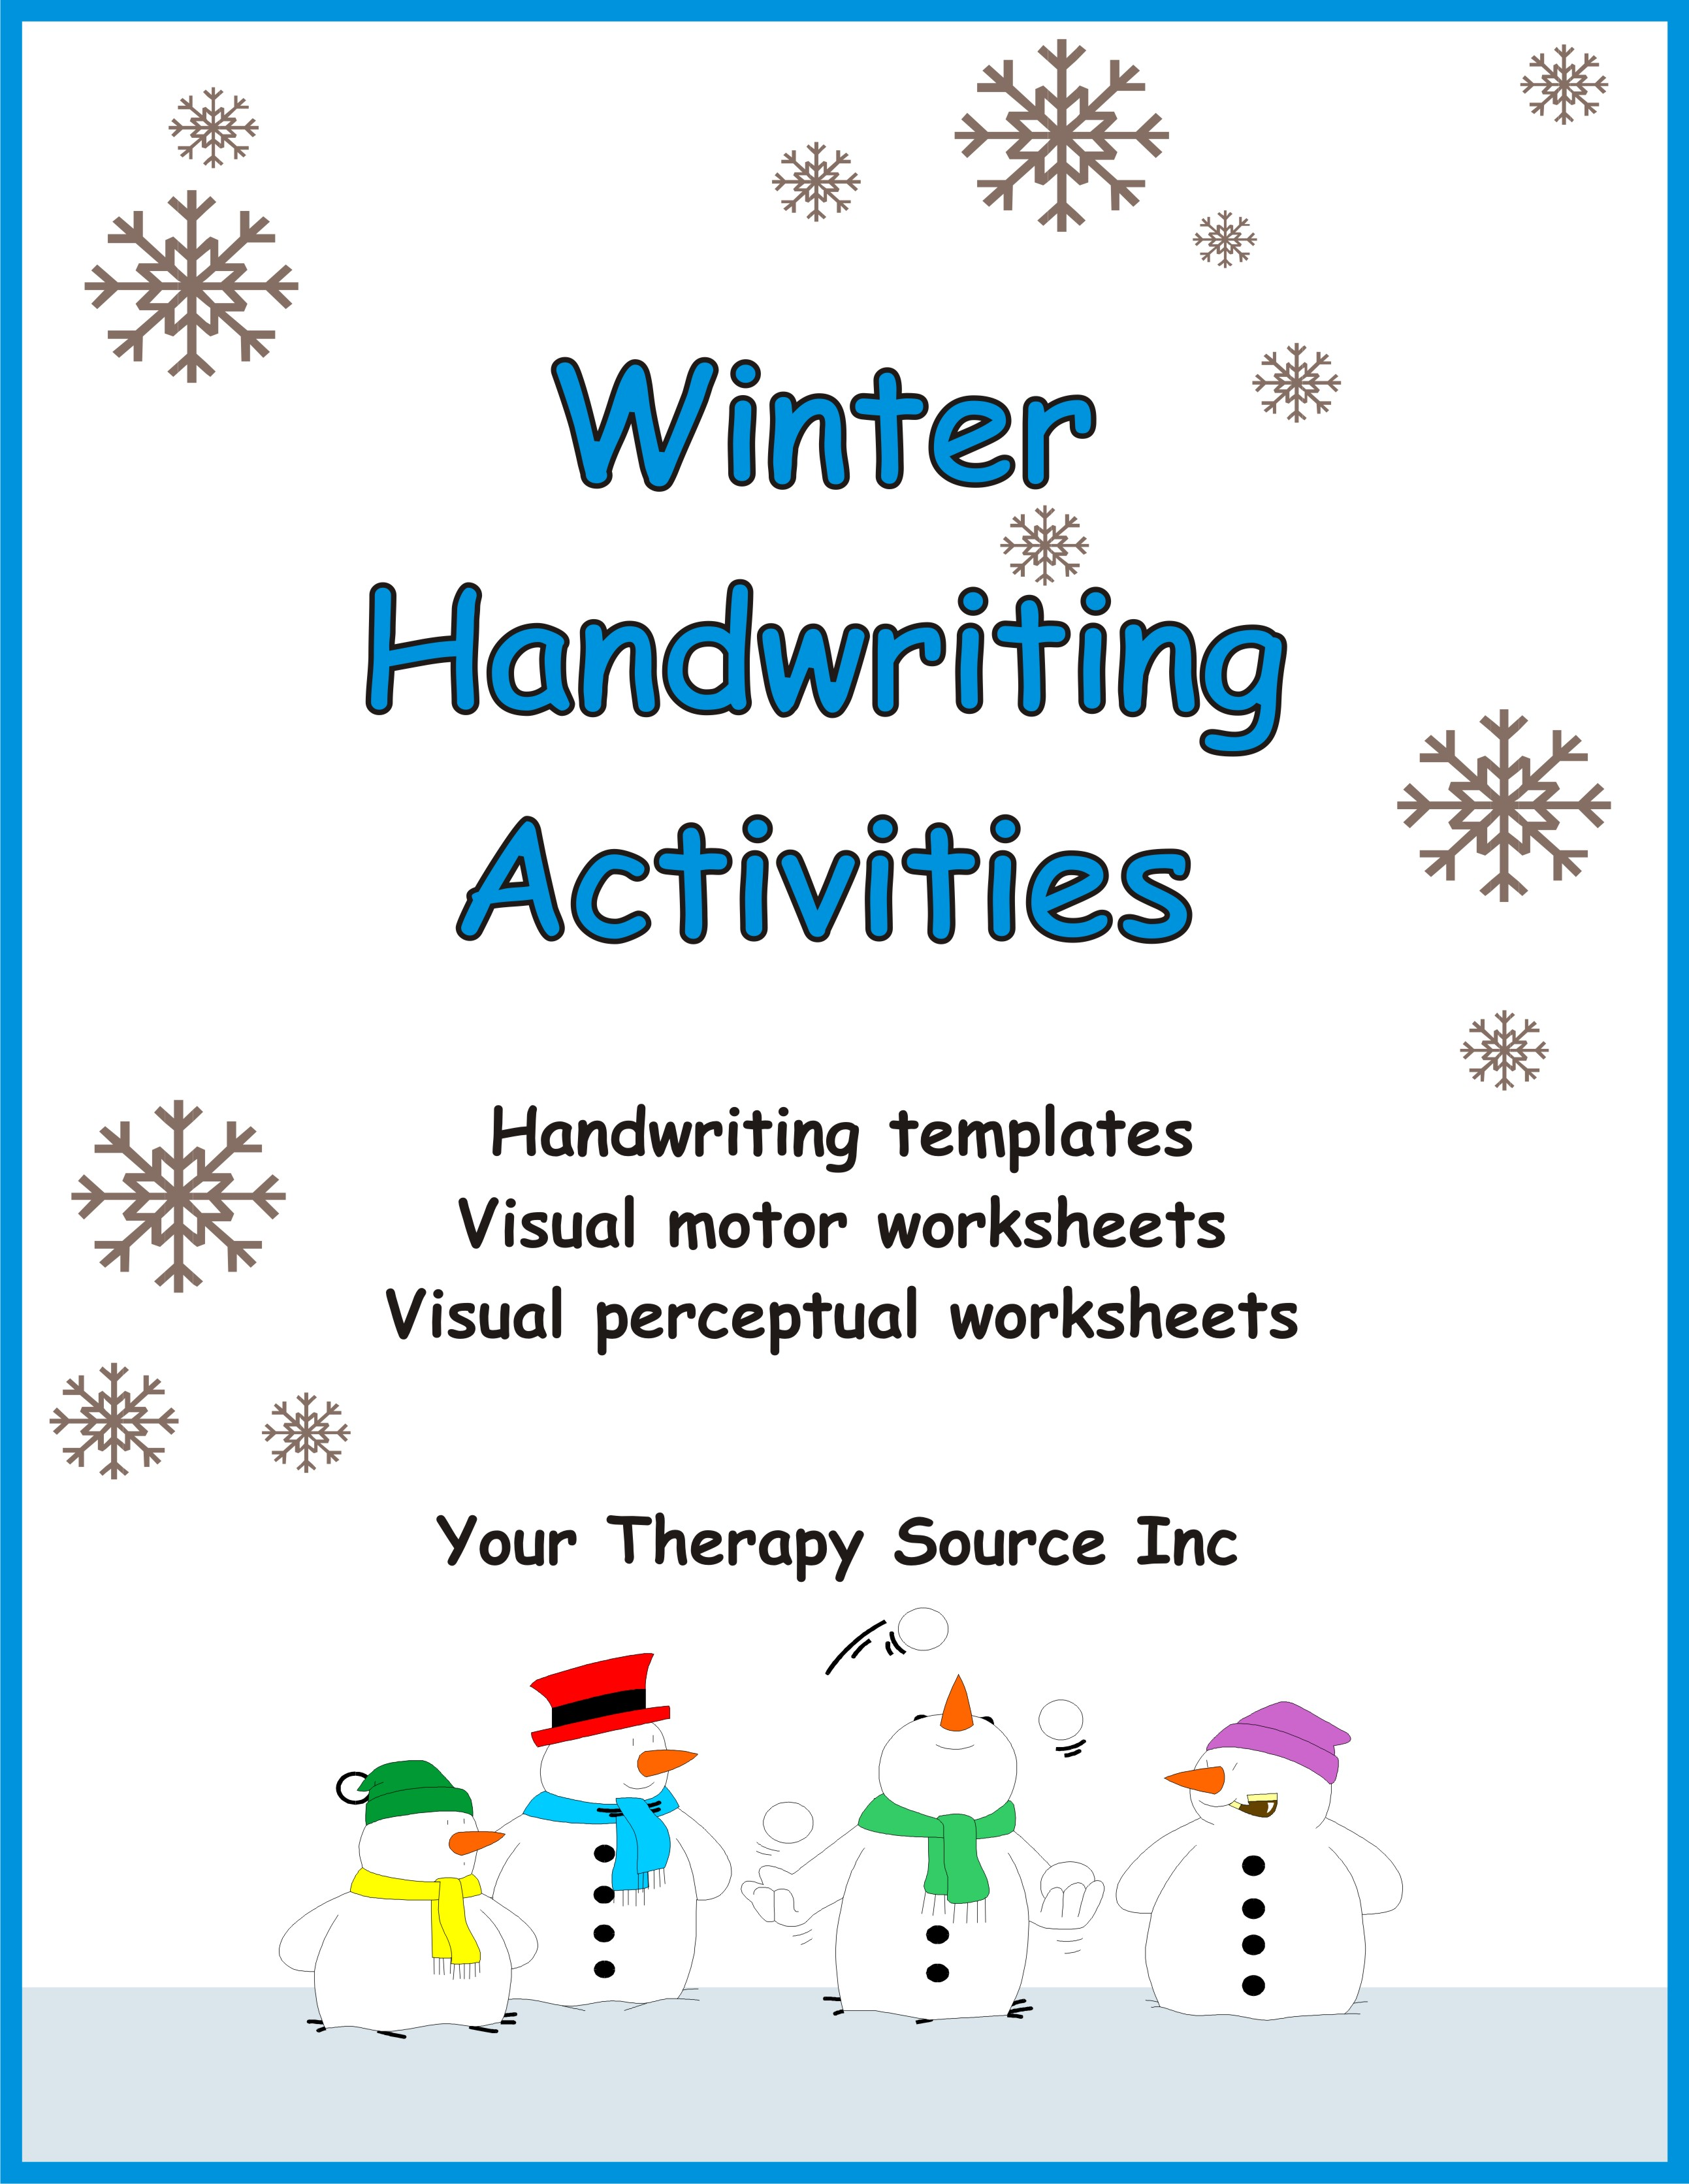 Winter Handwriting Activities